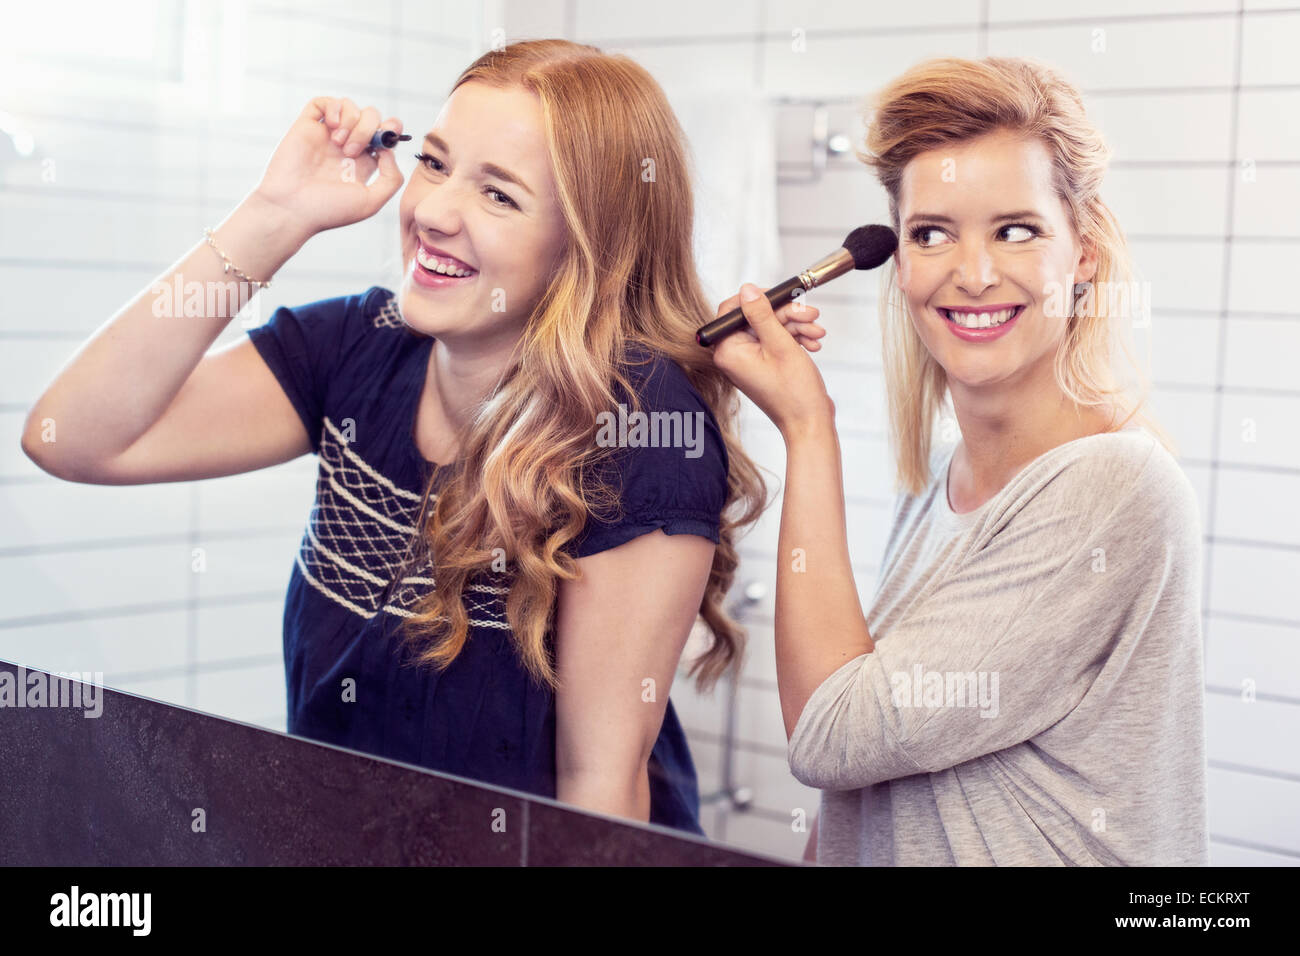 Happy young sisters applying makeup in mirror - Stock Image